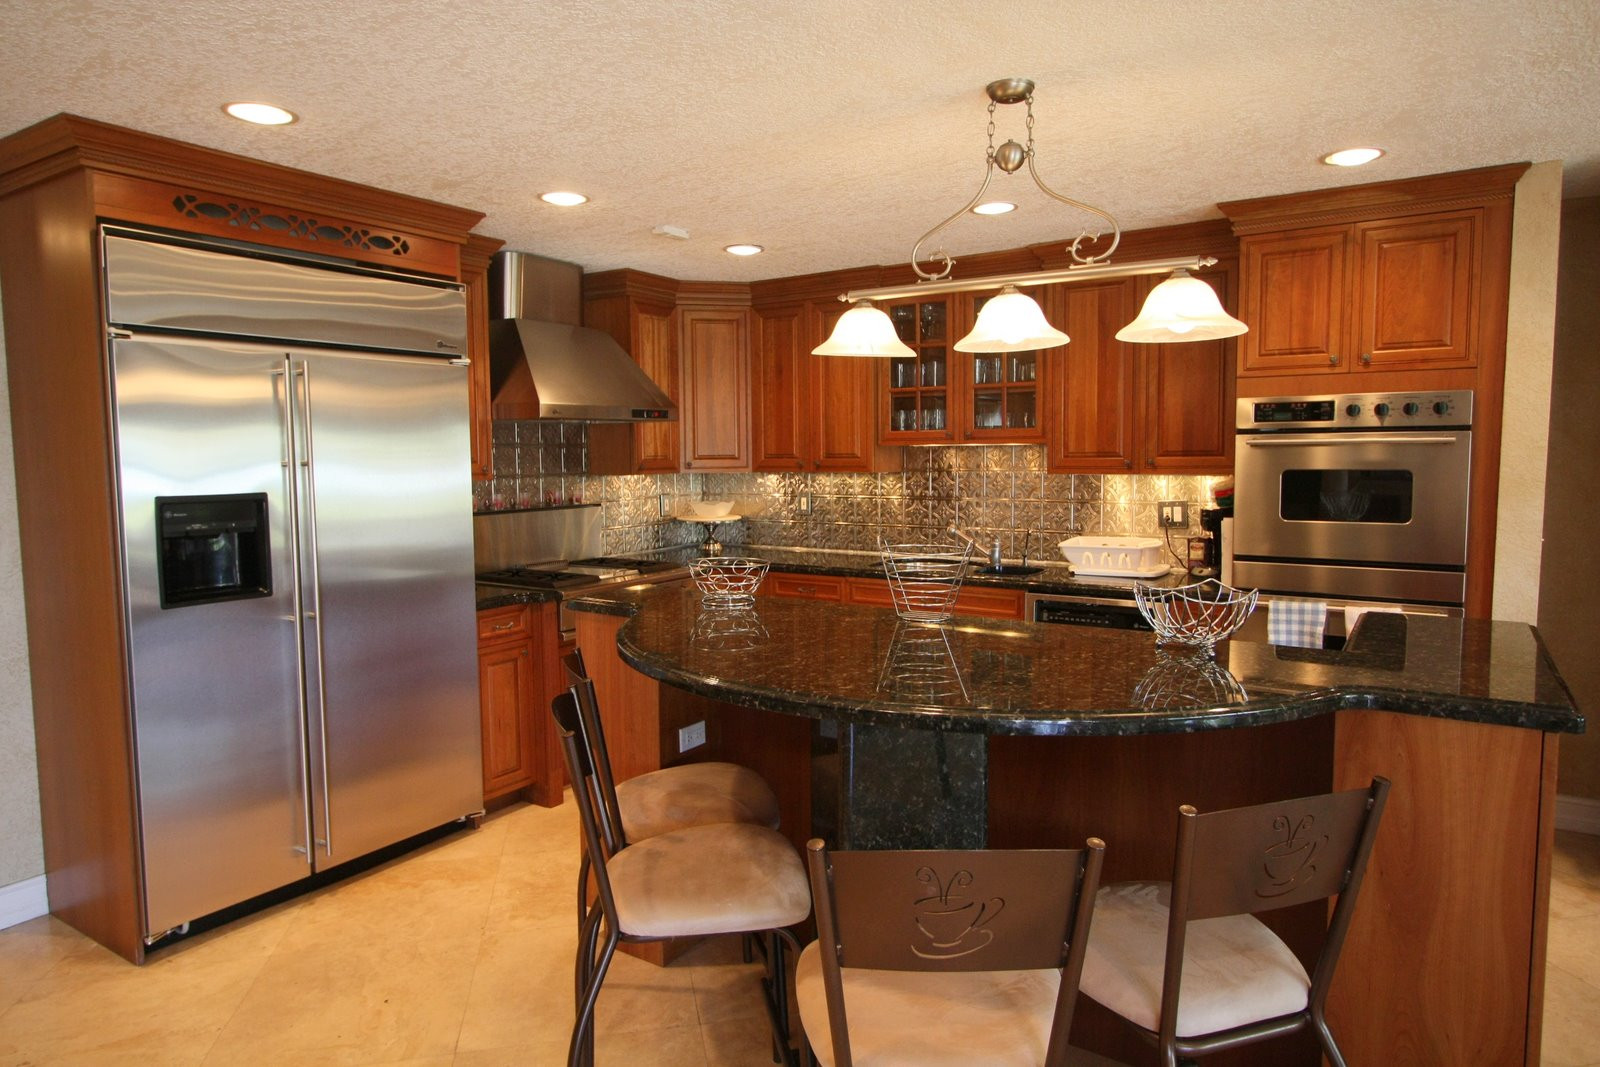 Best ideas about Remodeling Kitchen Ideas . Save or Pin Kitchen Remodeling Ideas & s Now.